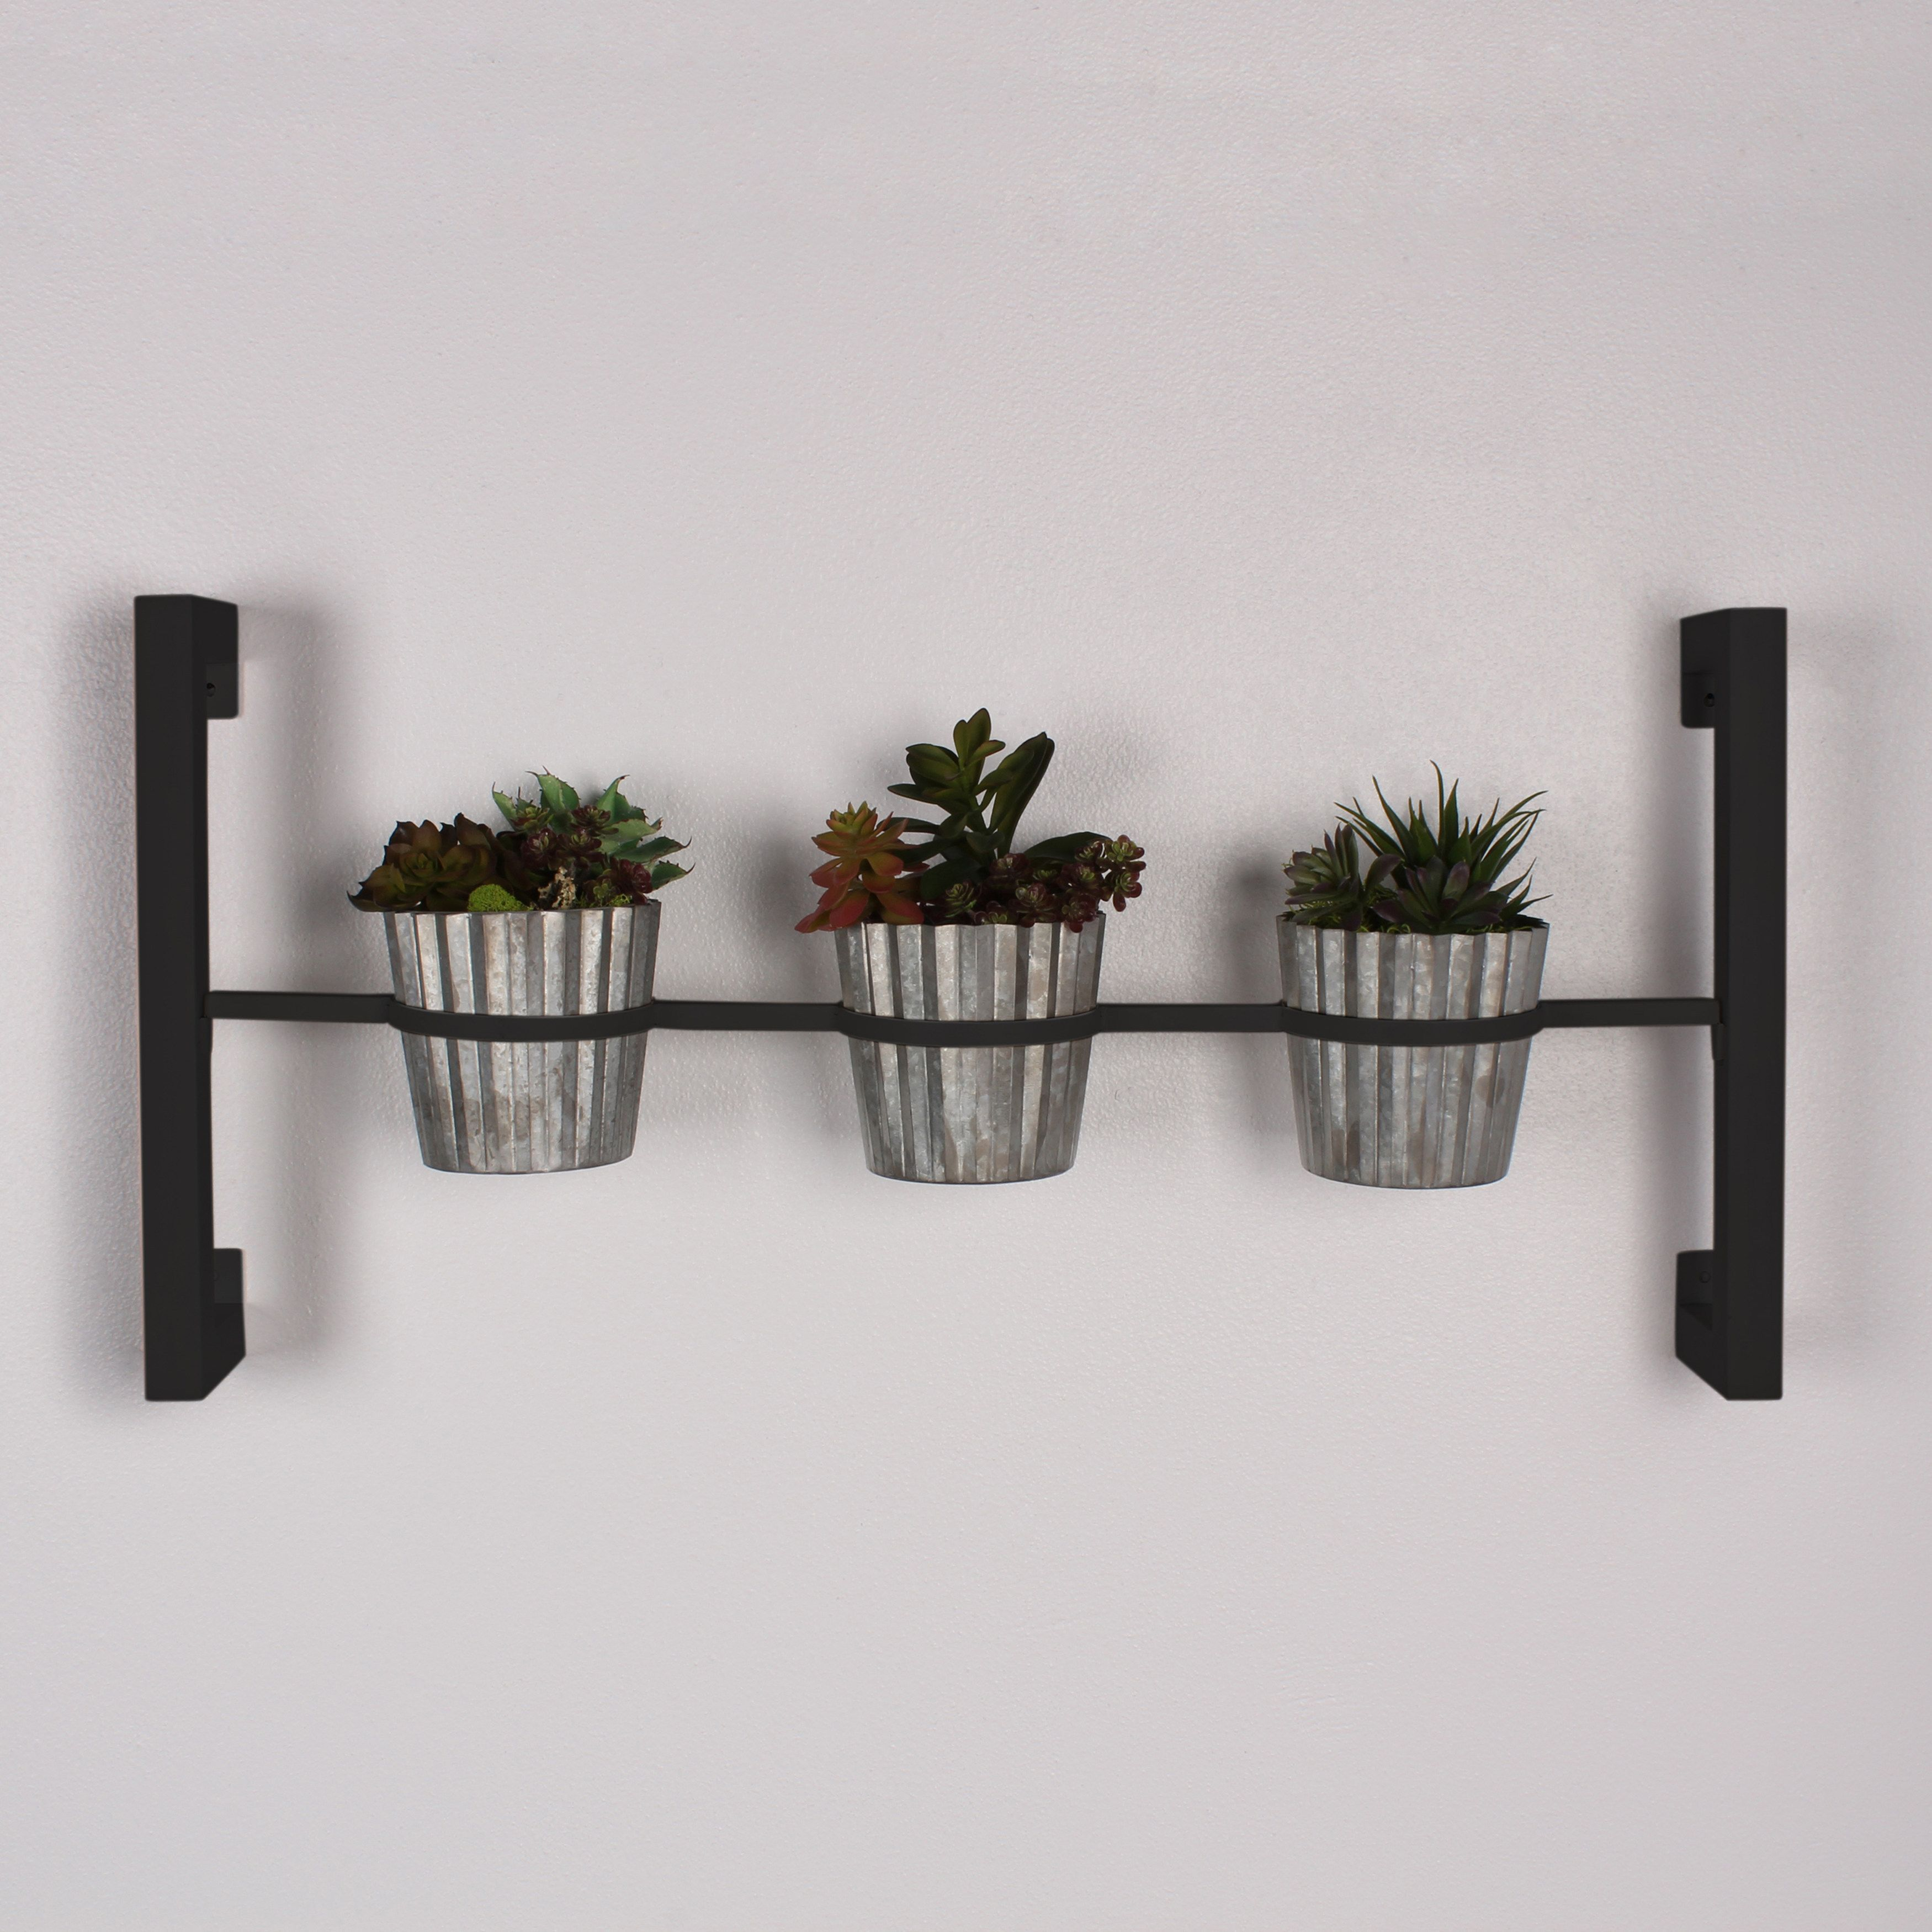 Hanging Indoor Herb Garden Kate And Laurel Groves Indoor Herb Garden Black Metal